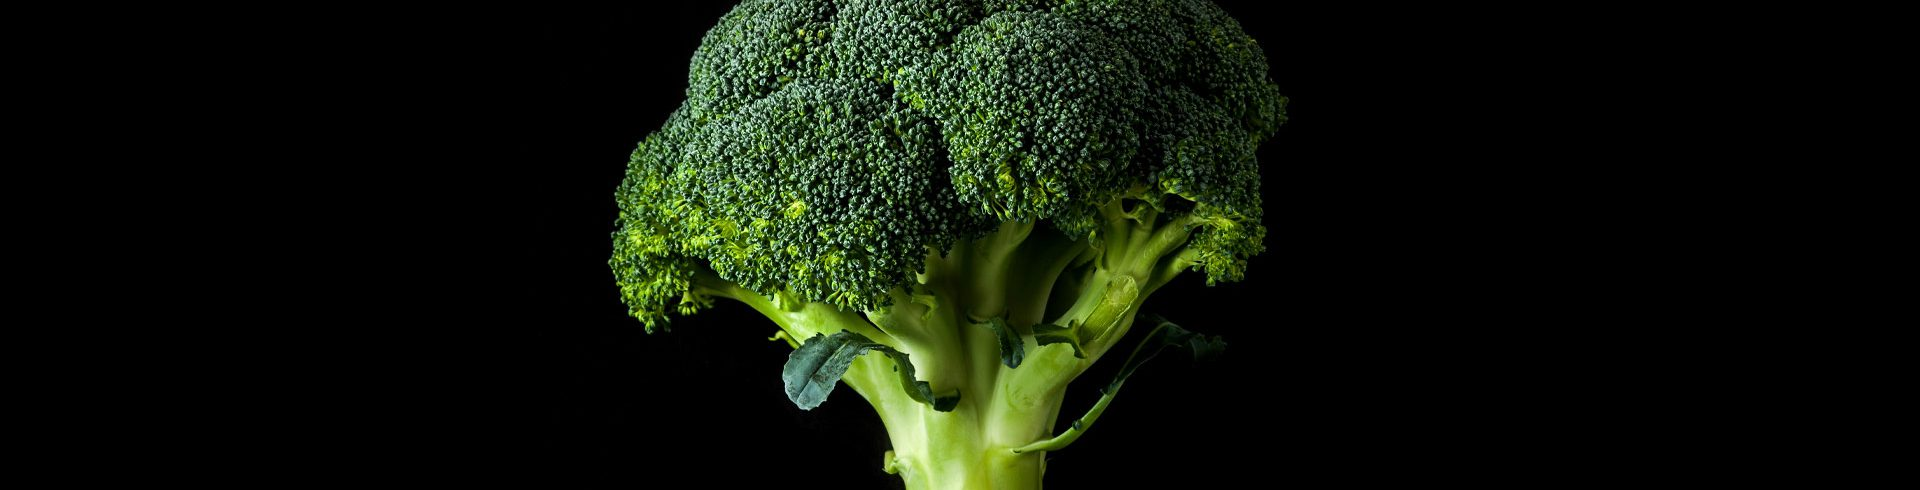 Photograph of Broccoli